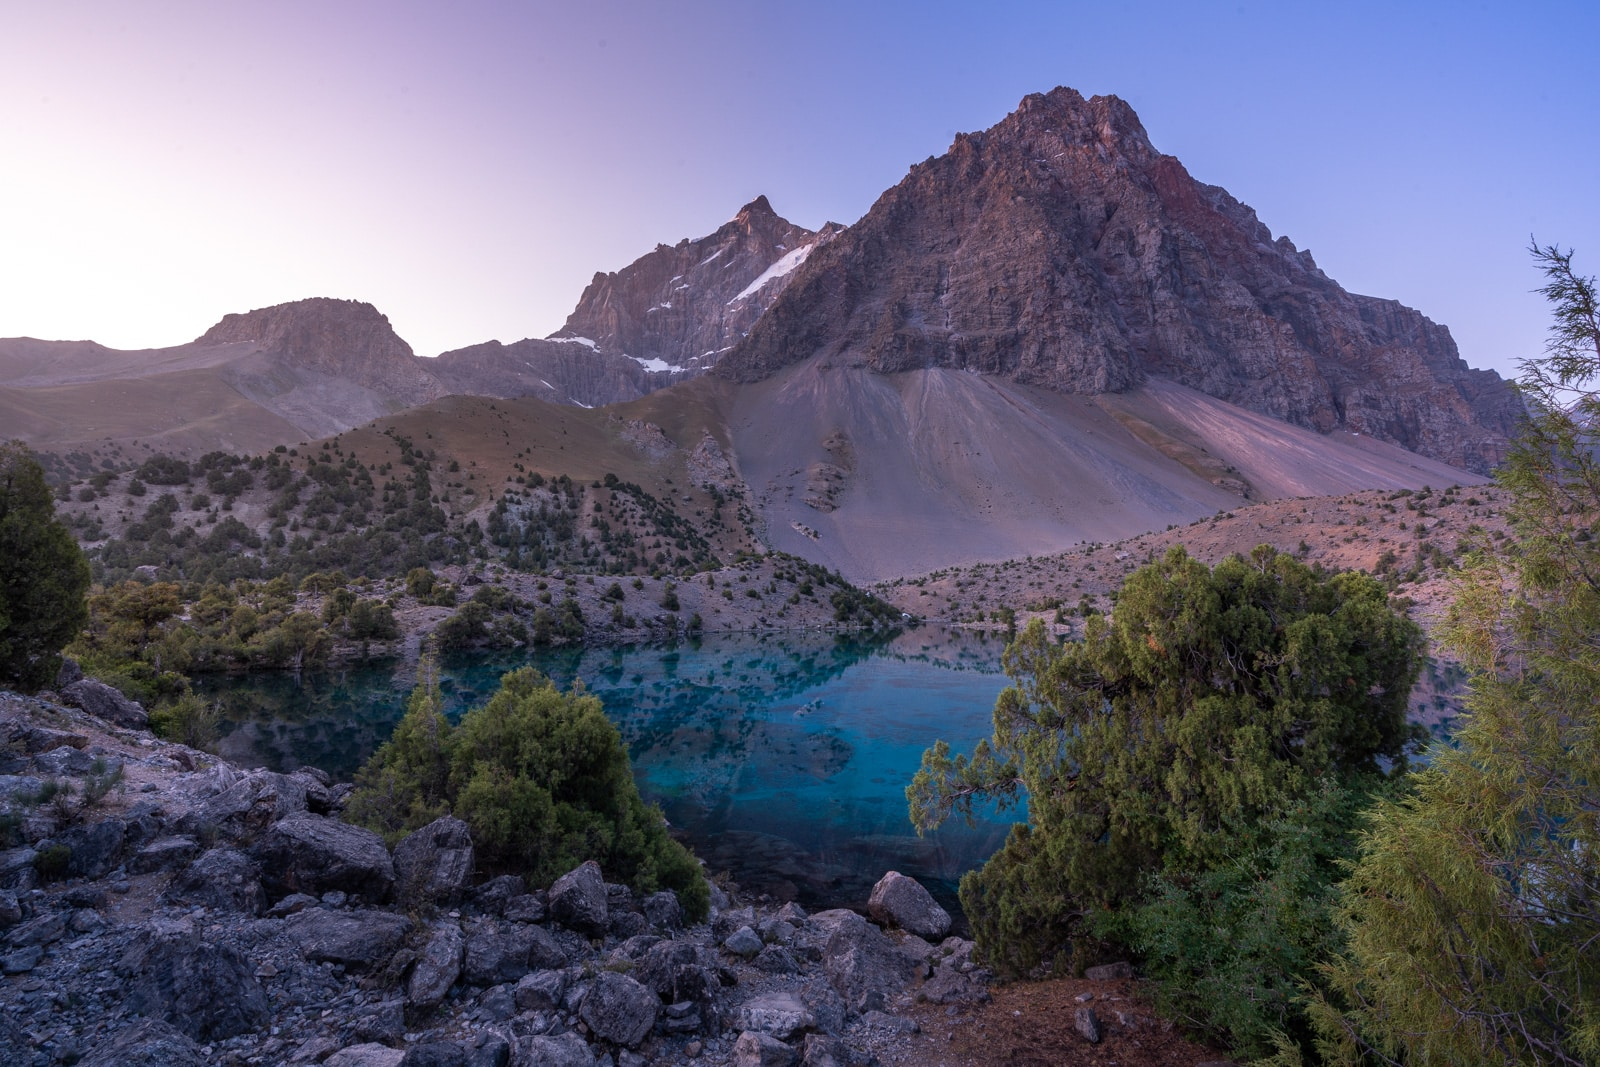 Guitar lake in Tajikistan's Fann Mountains